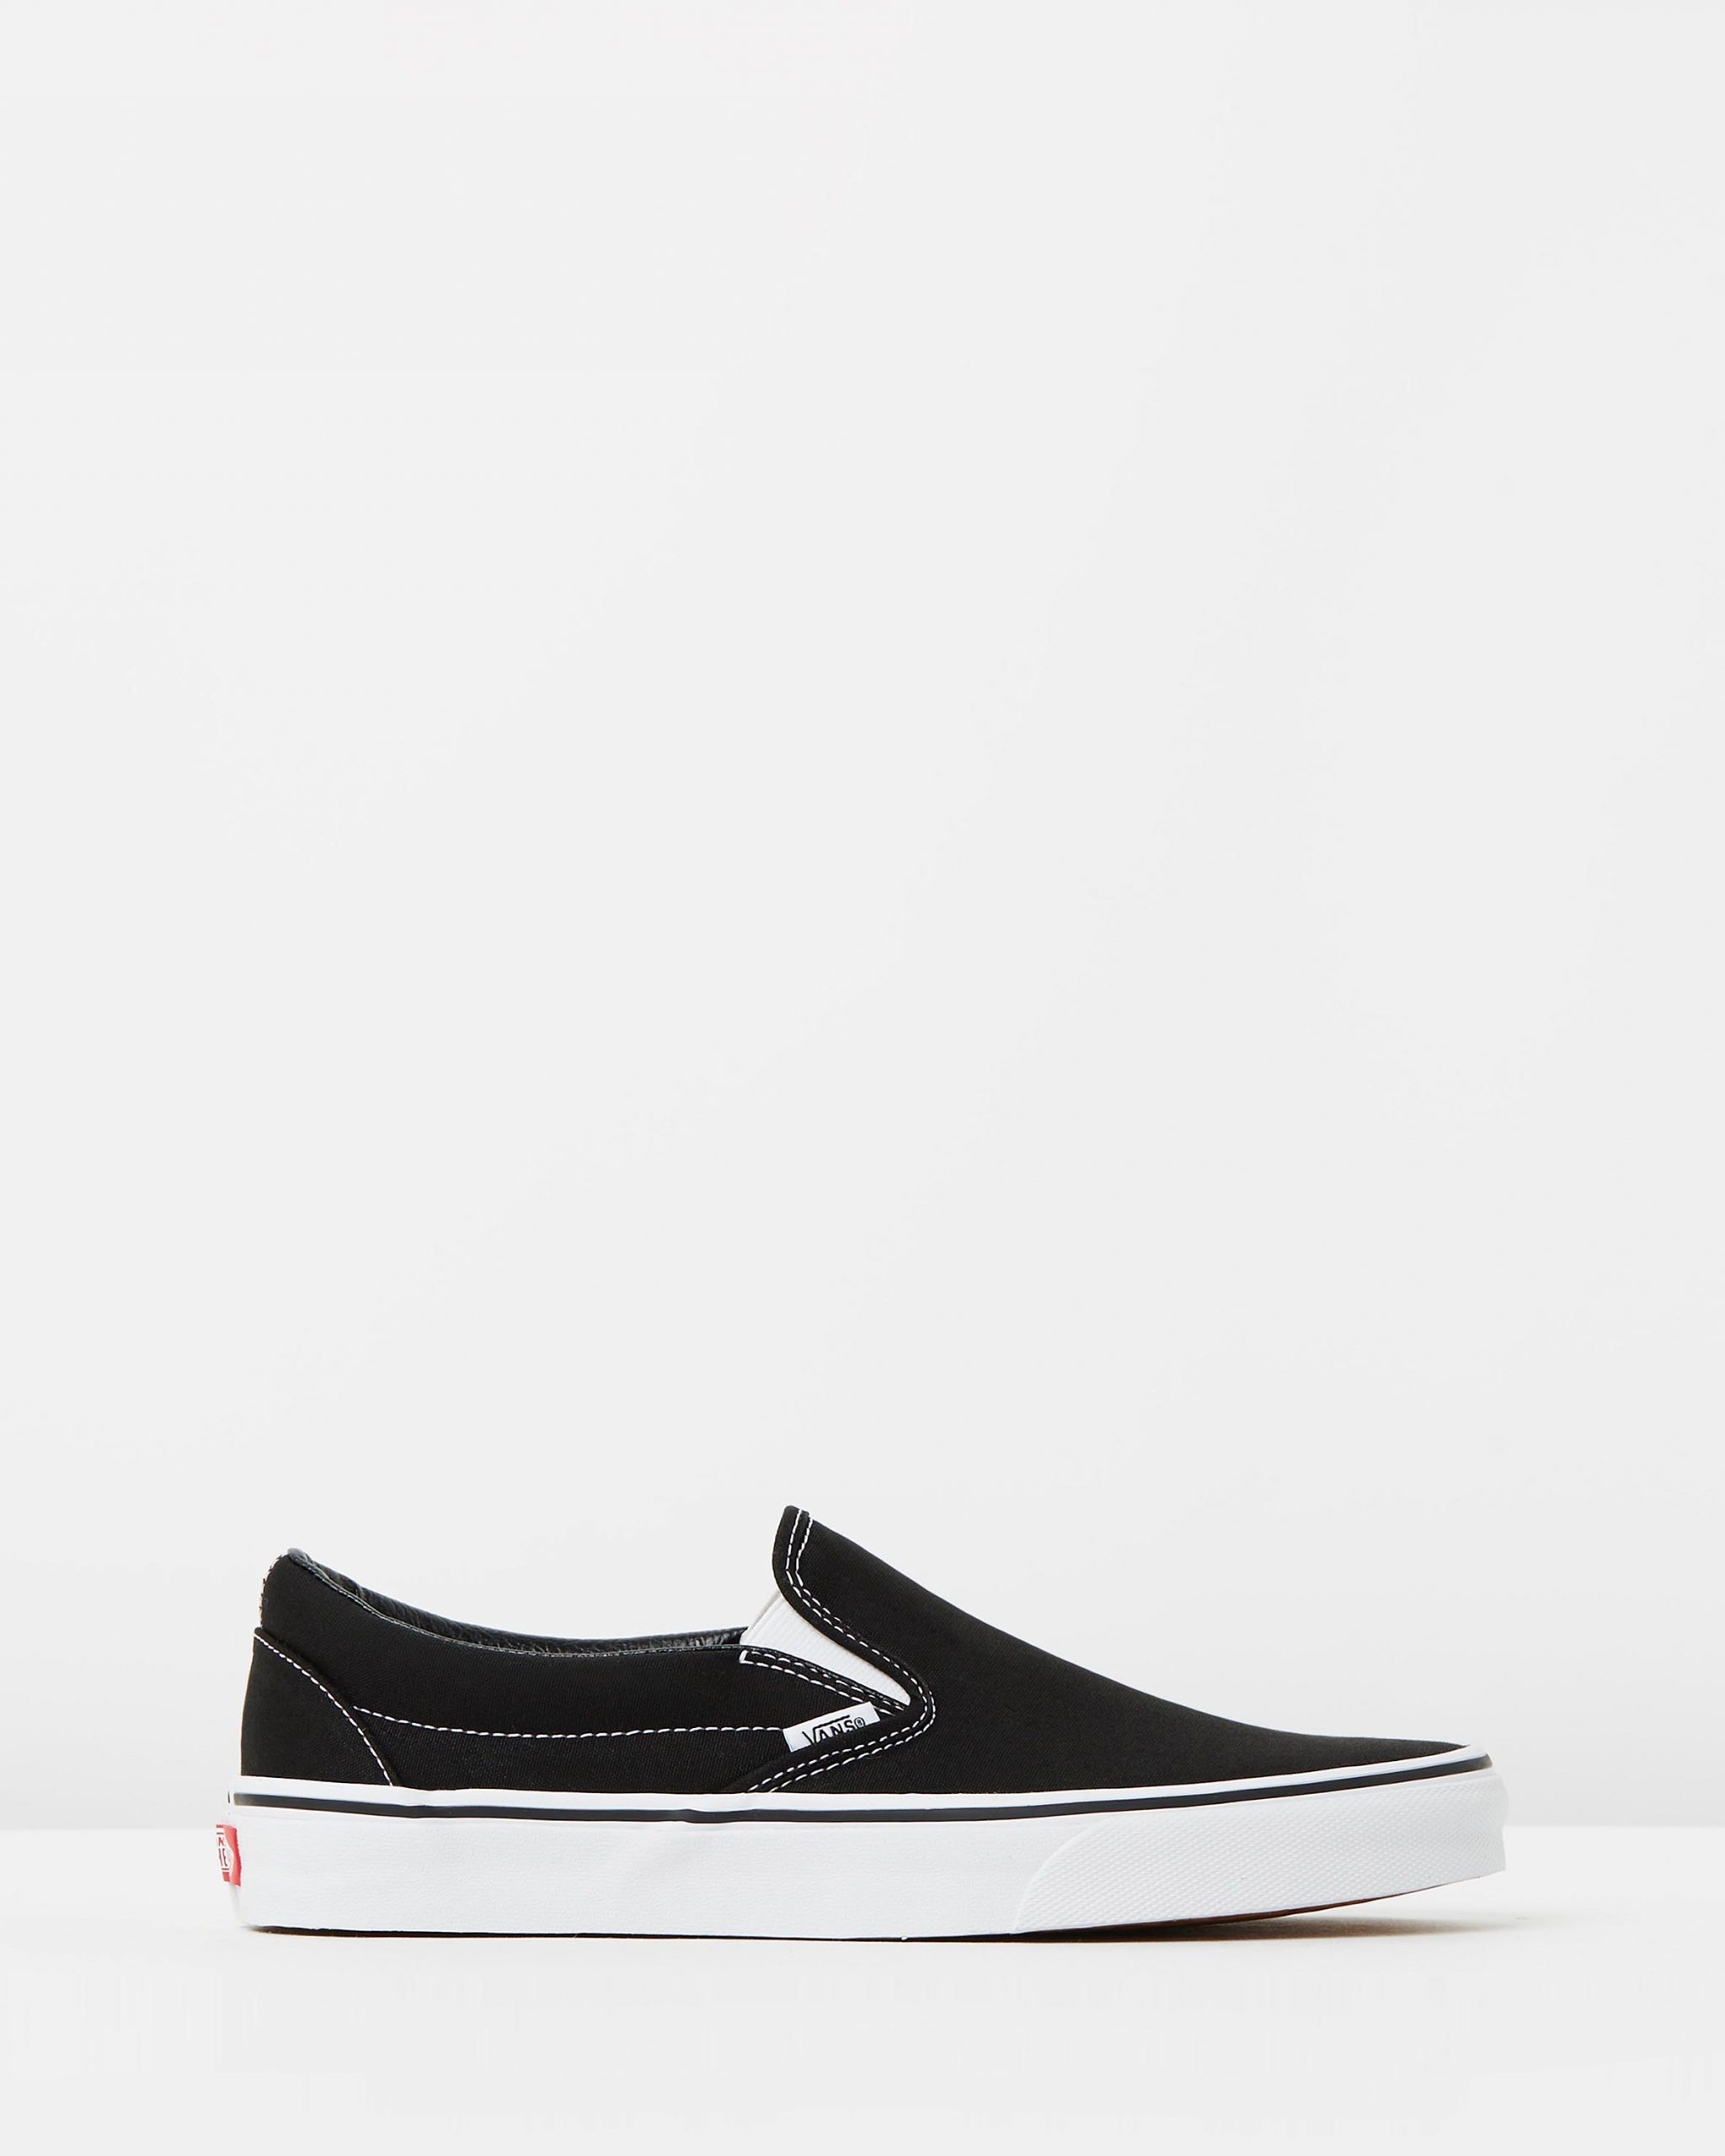 Vans Womens Classic Slip-on Skate Shoe Black